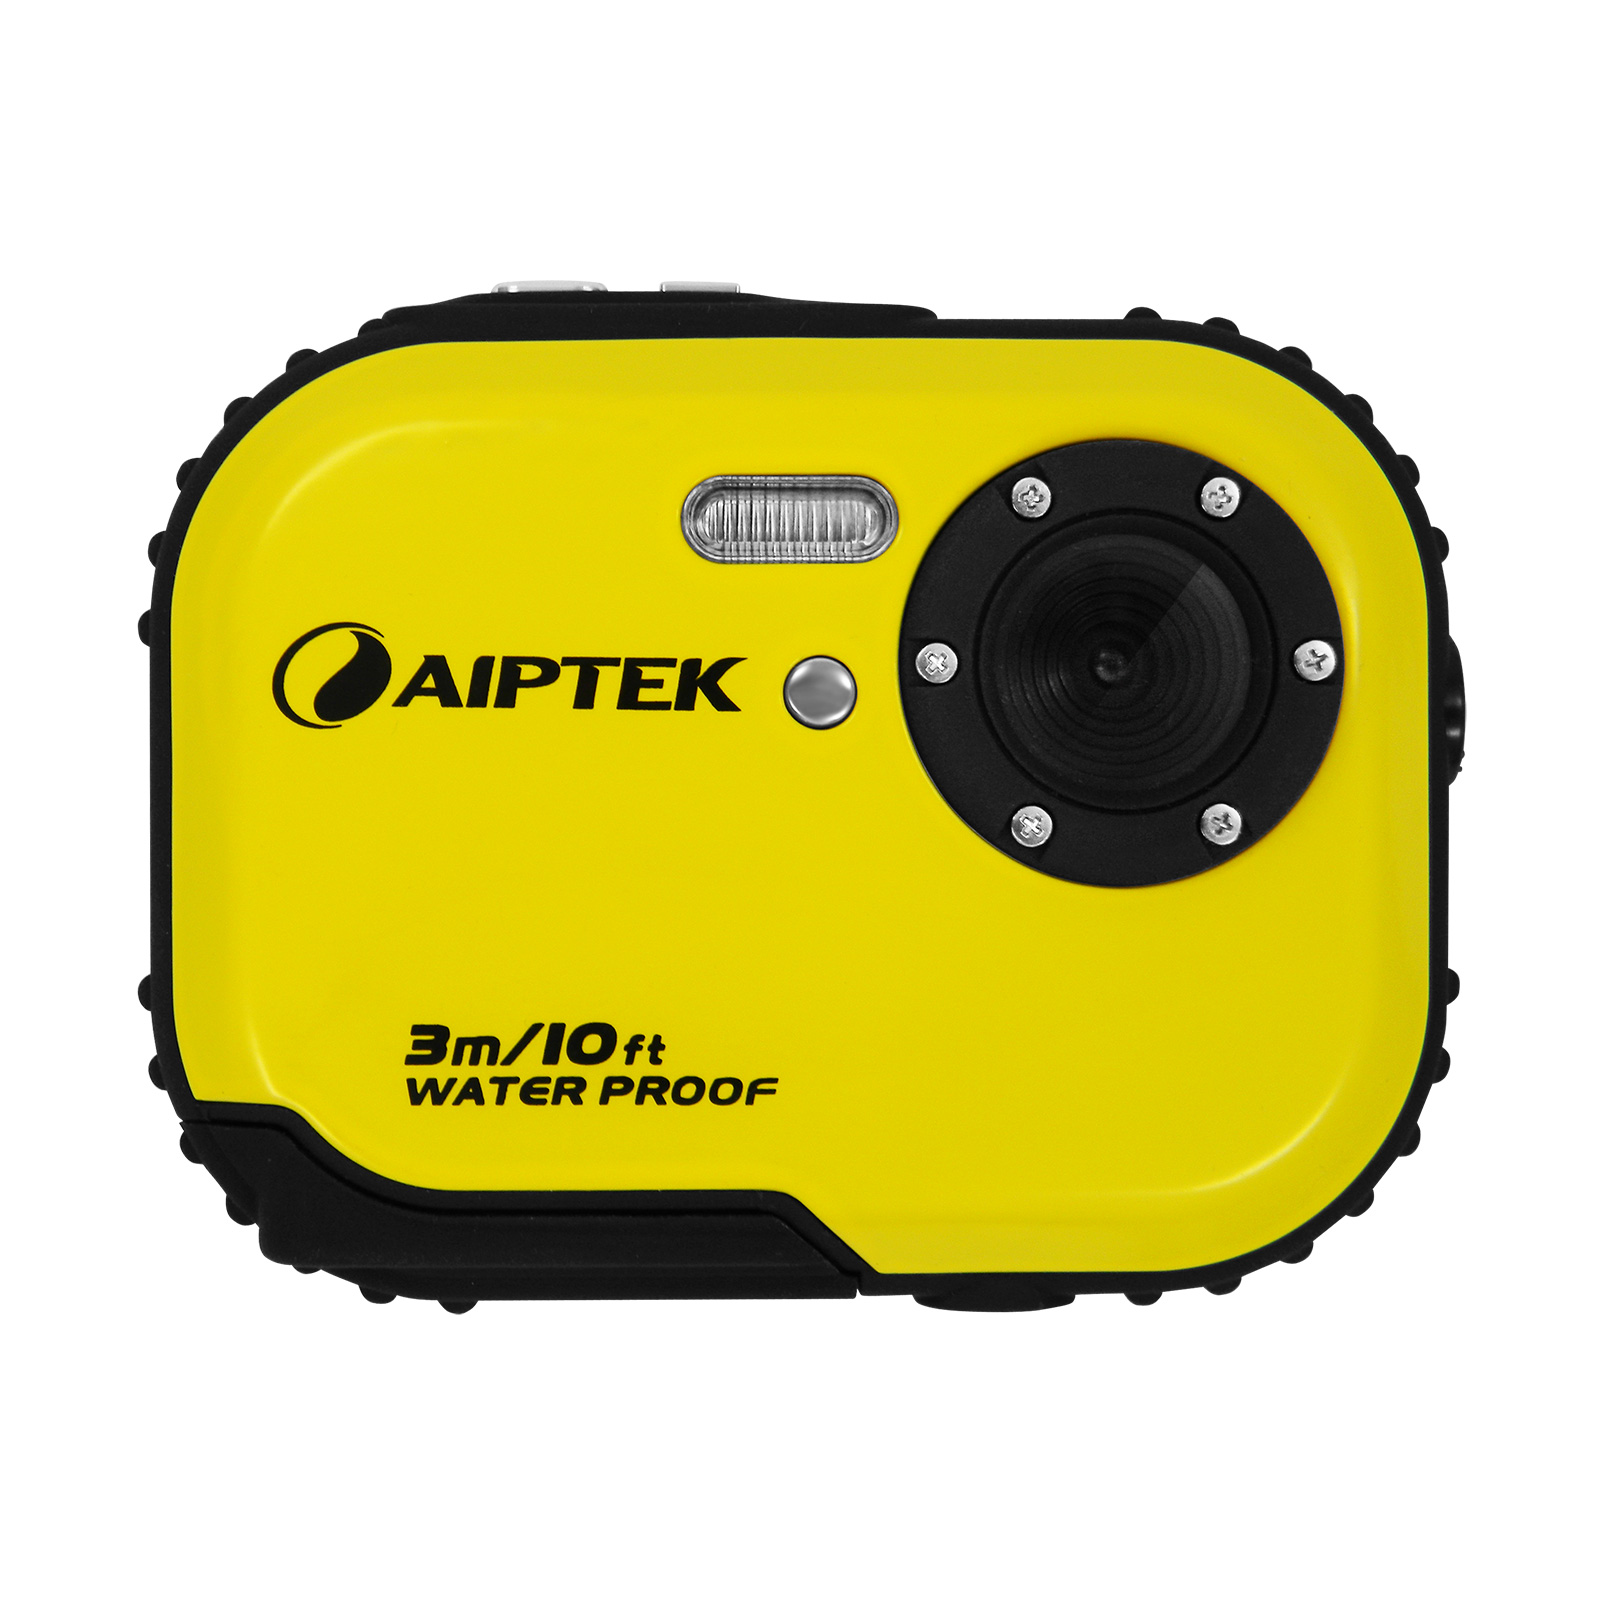 Aiptek Outdoor Camera / Camcorder - waterproof - 3